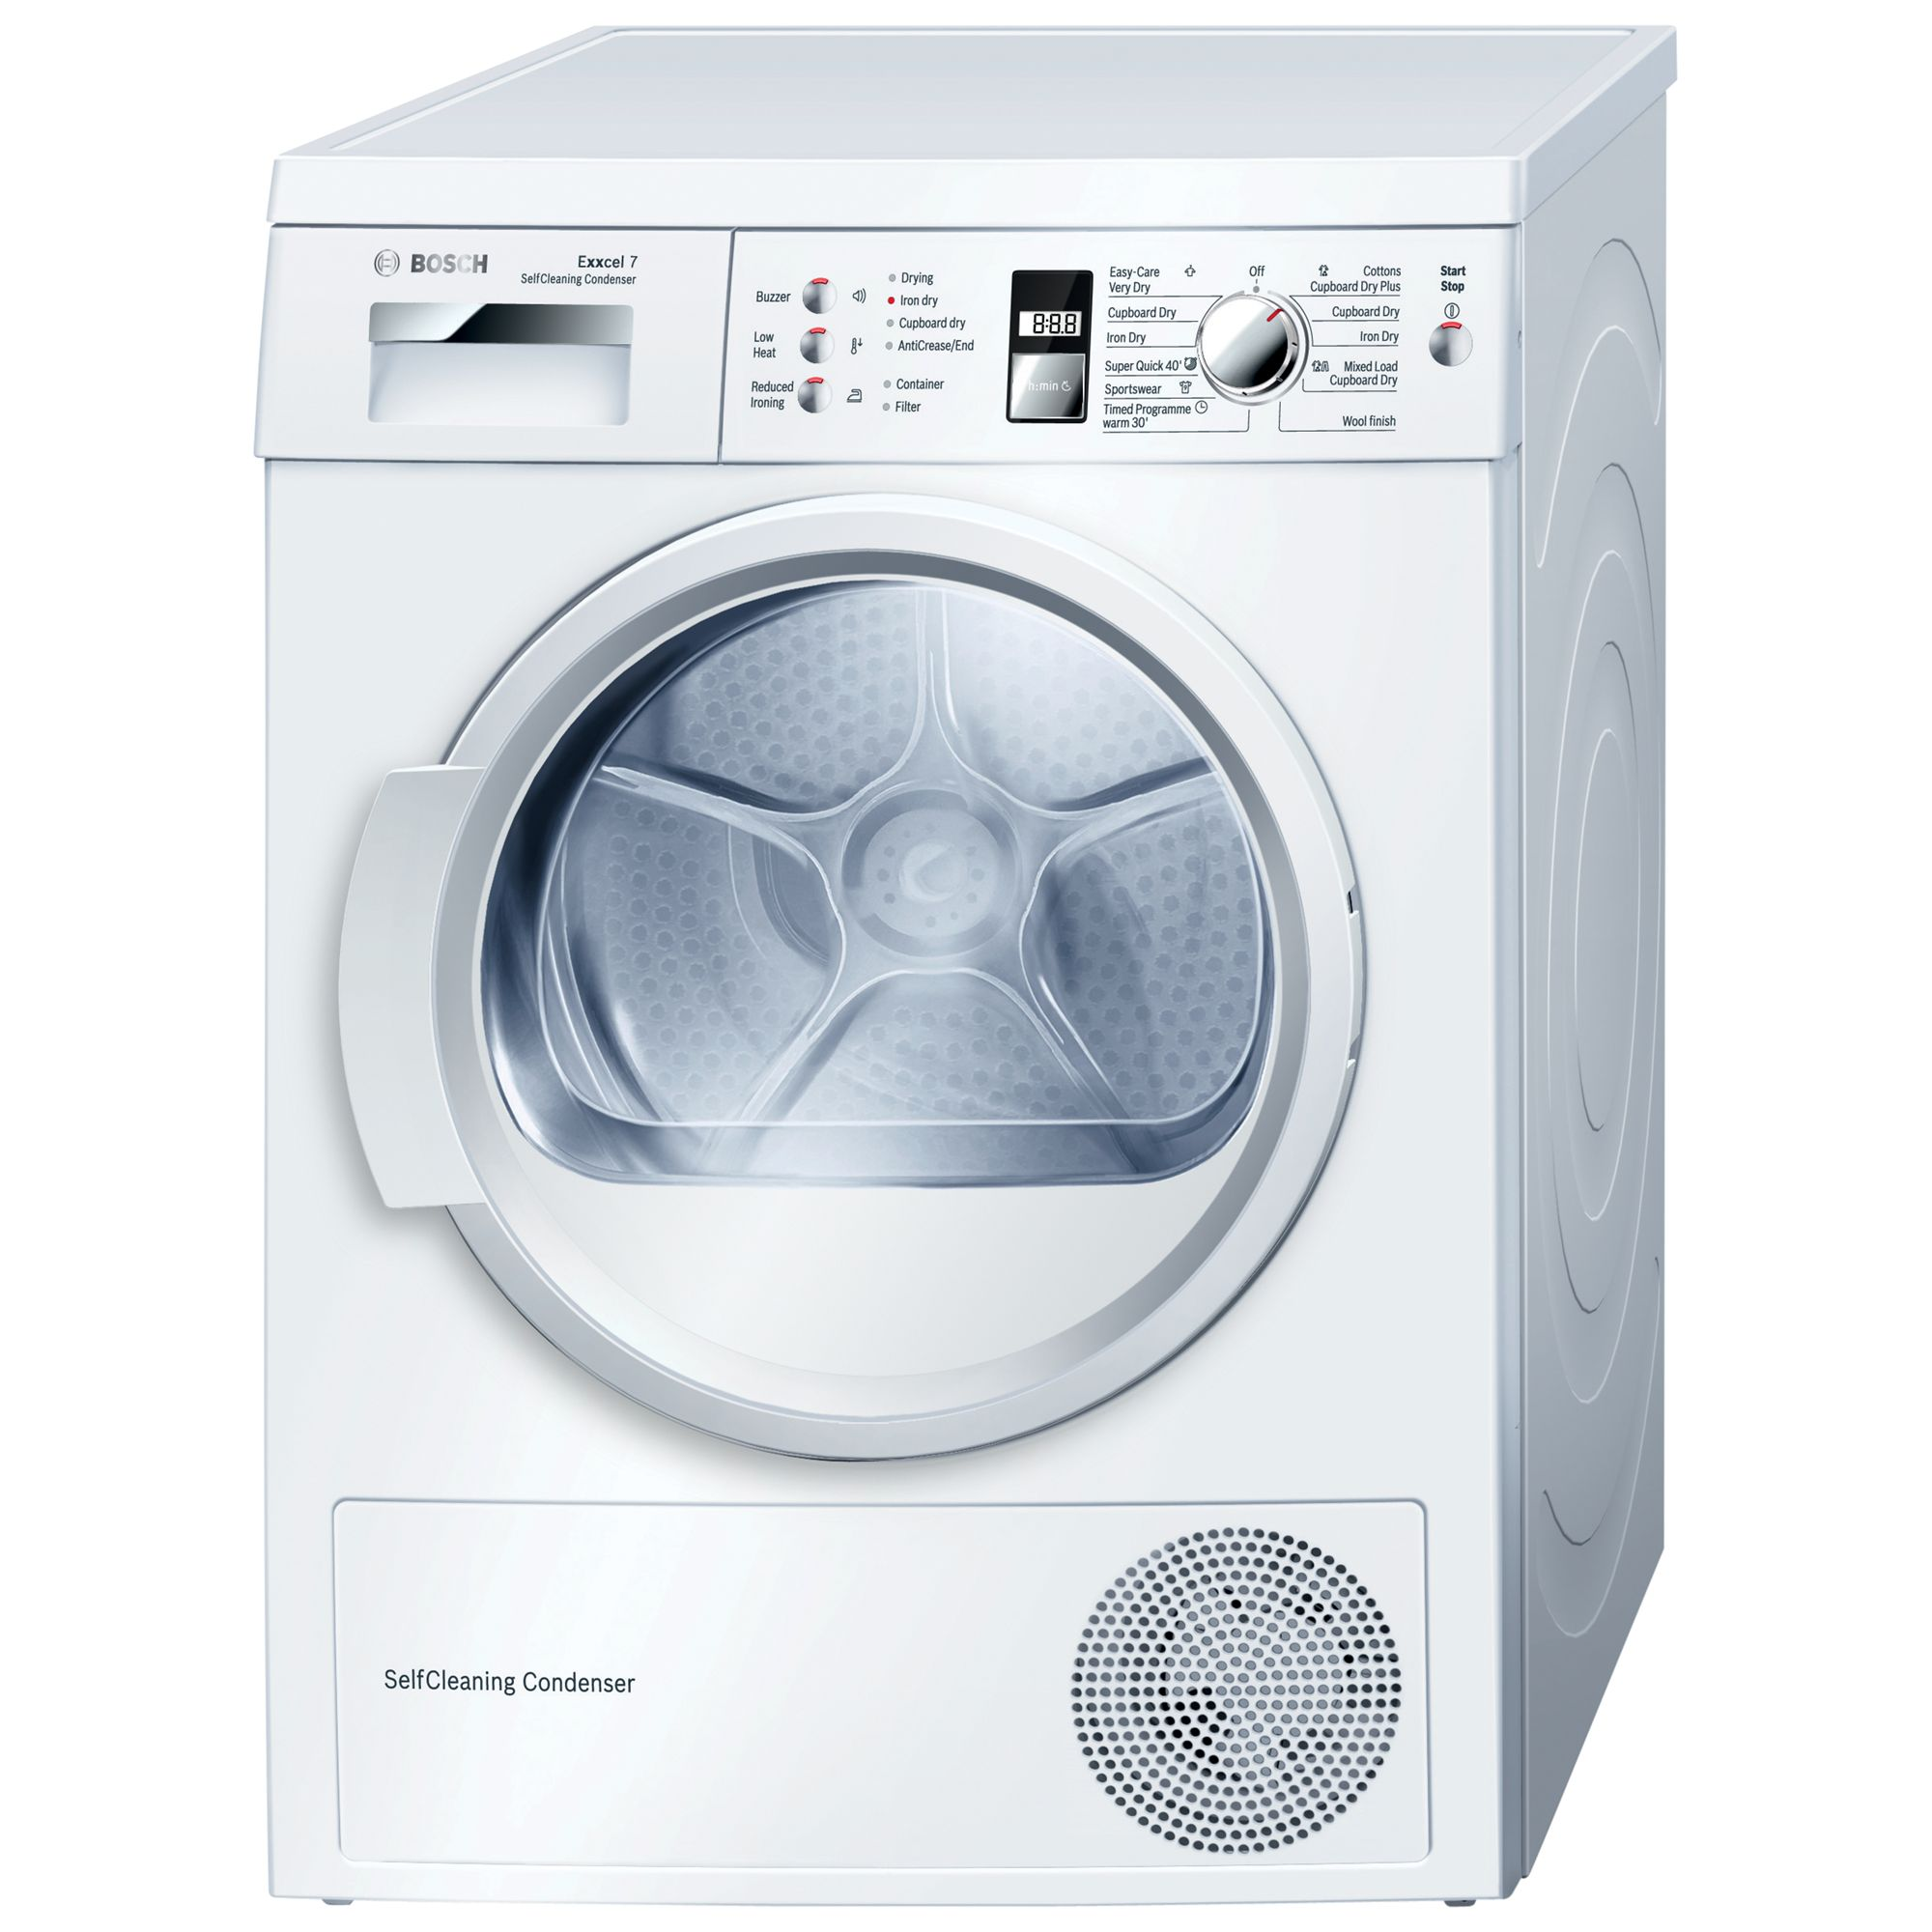 buy cheap tumble dryer bosch compare tumble dryers. Black Bedroom Furniture Sets. Home Design Ideas